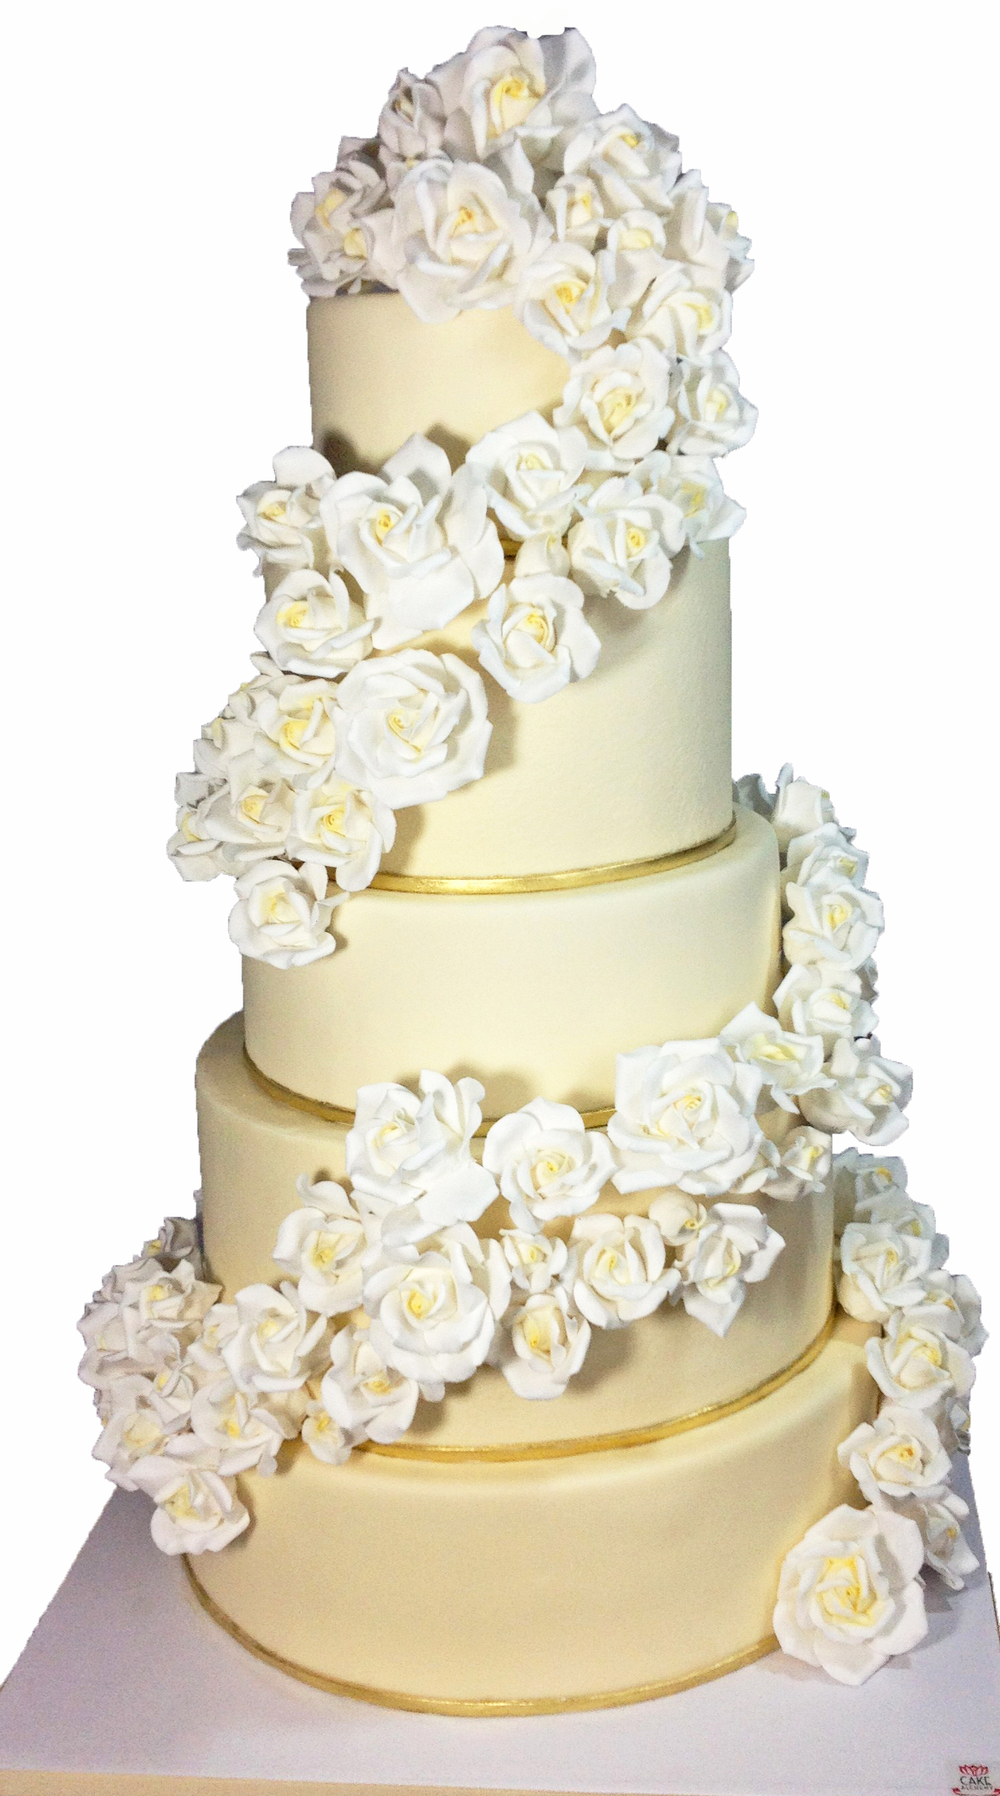 How To Make Wedding Cakes At Home